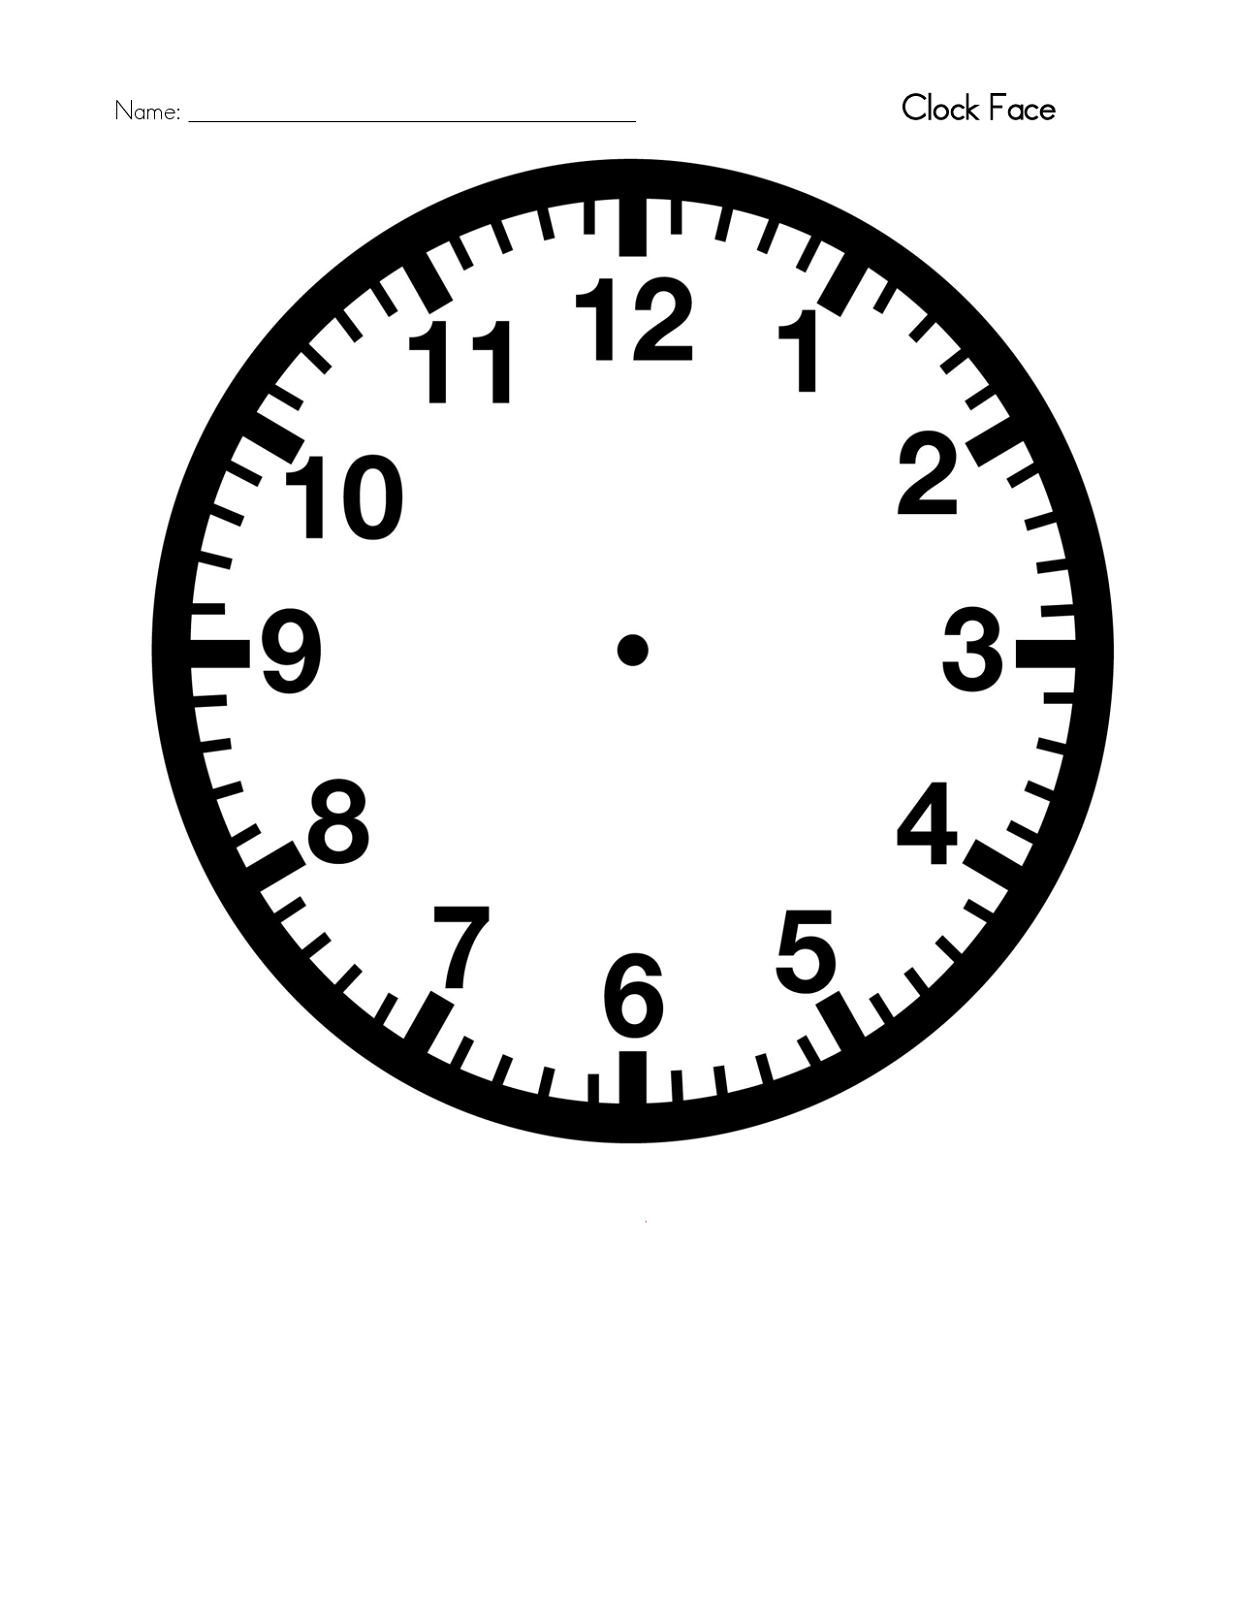 clock face templates for printing - blank clock template printable activity shelter